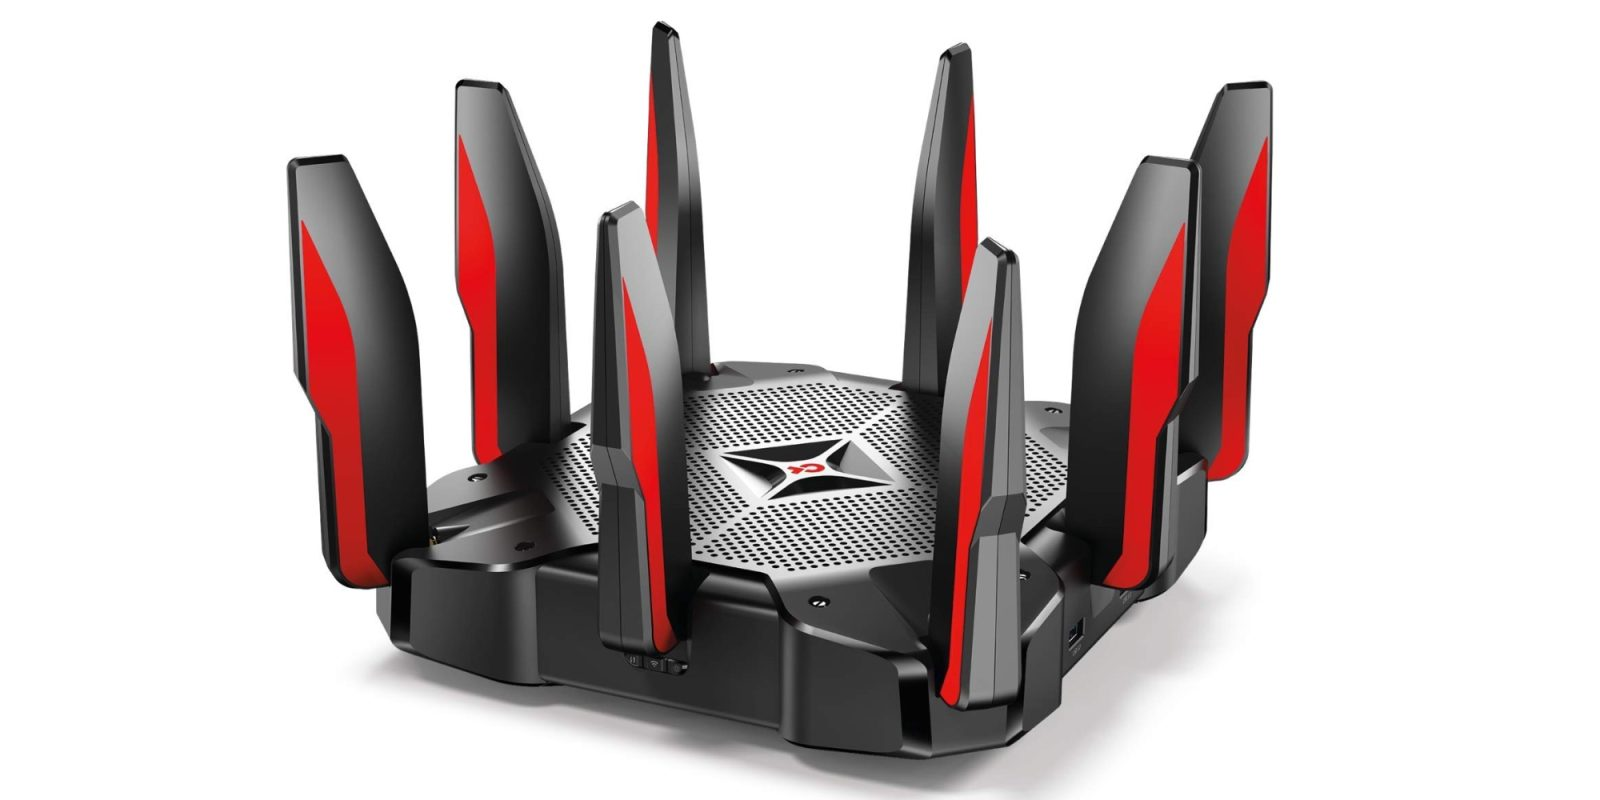 TP-Link's Tri Band 802.11ac Gaming Router gets an $80 discount, now at $270